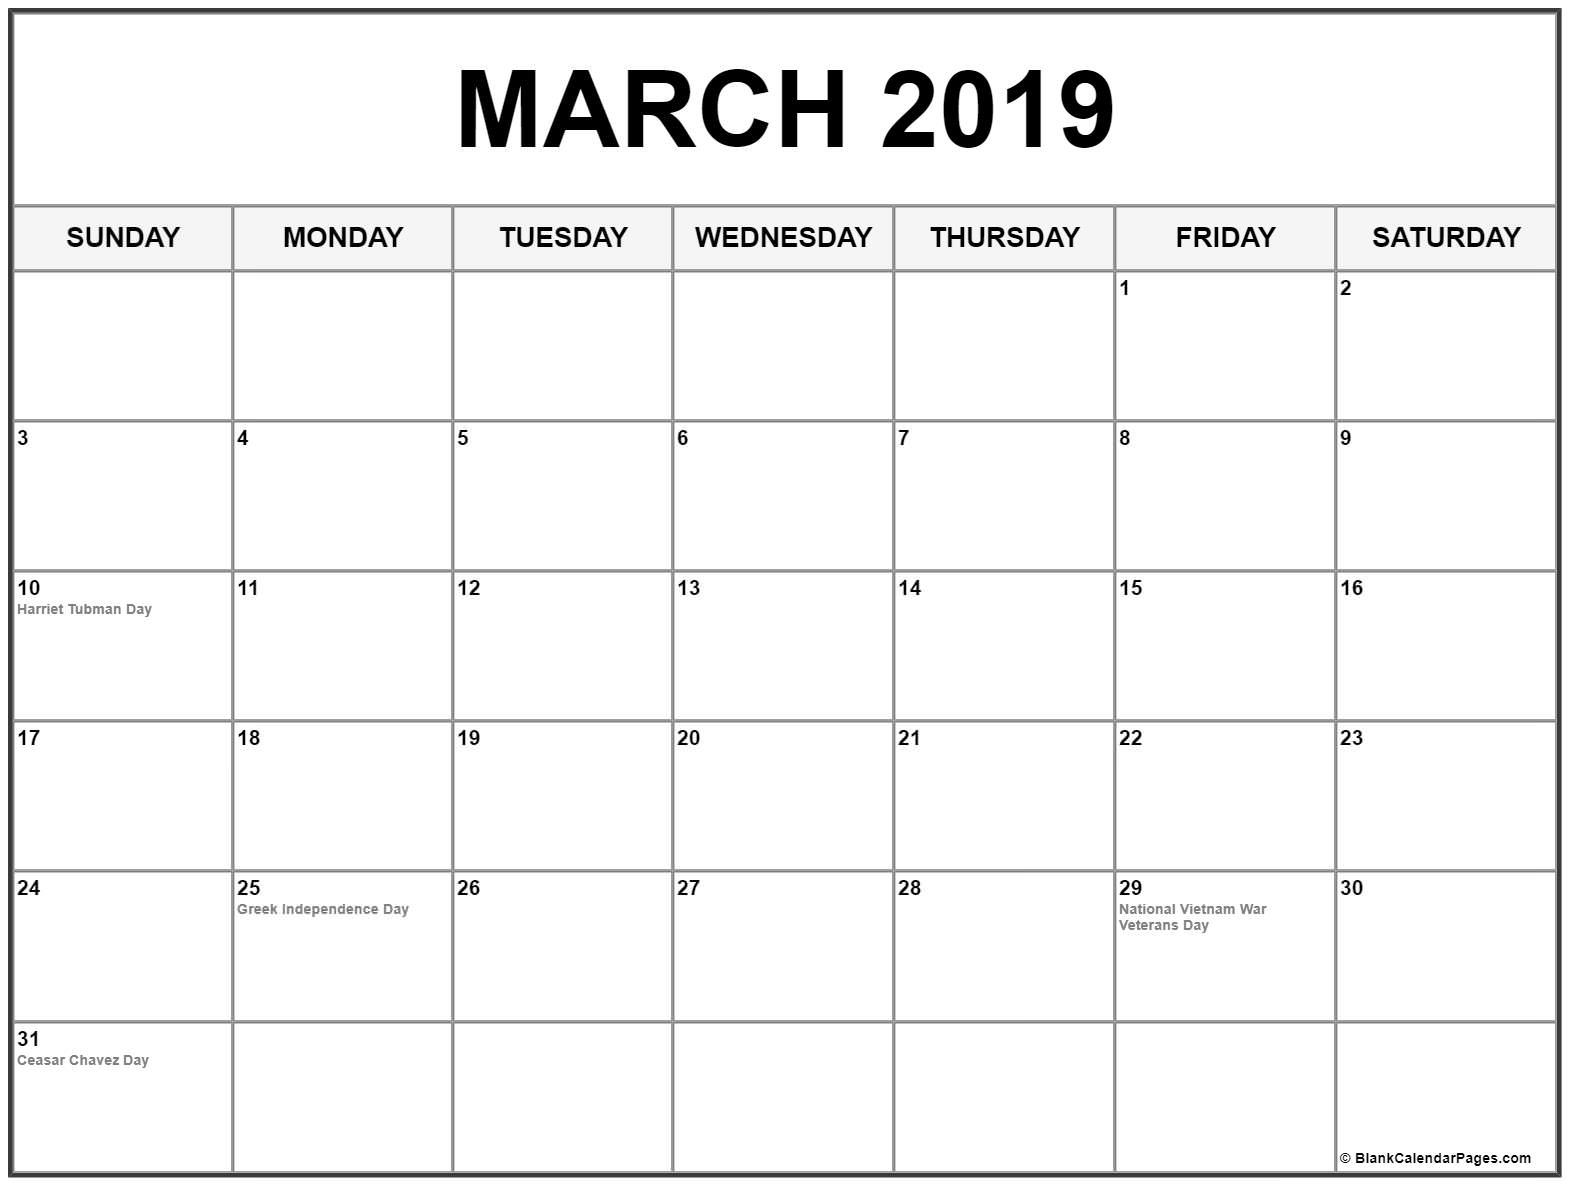 March 2019 Calendar Blank Template - Printable Calendar 2019| Blank inside National Day Calendar Blank